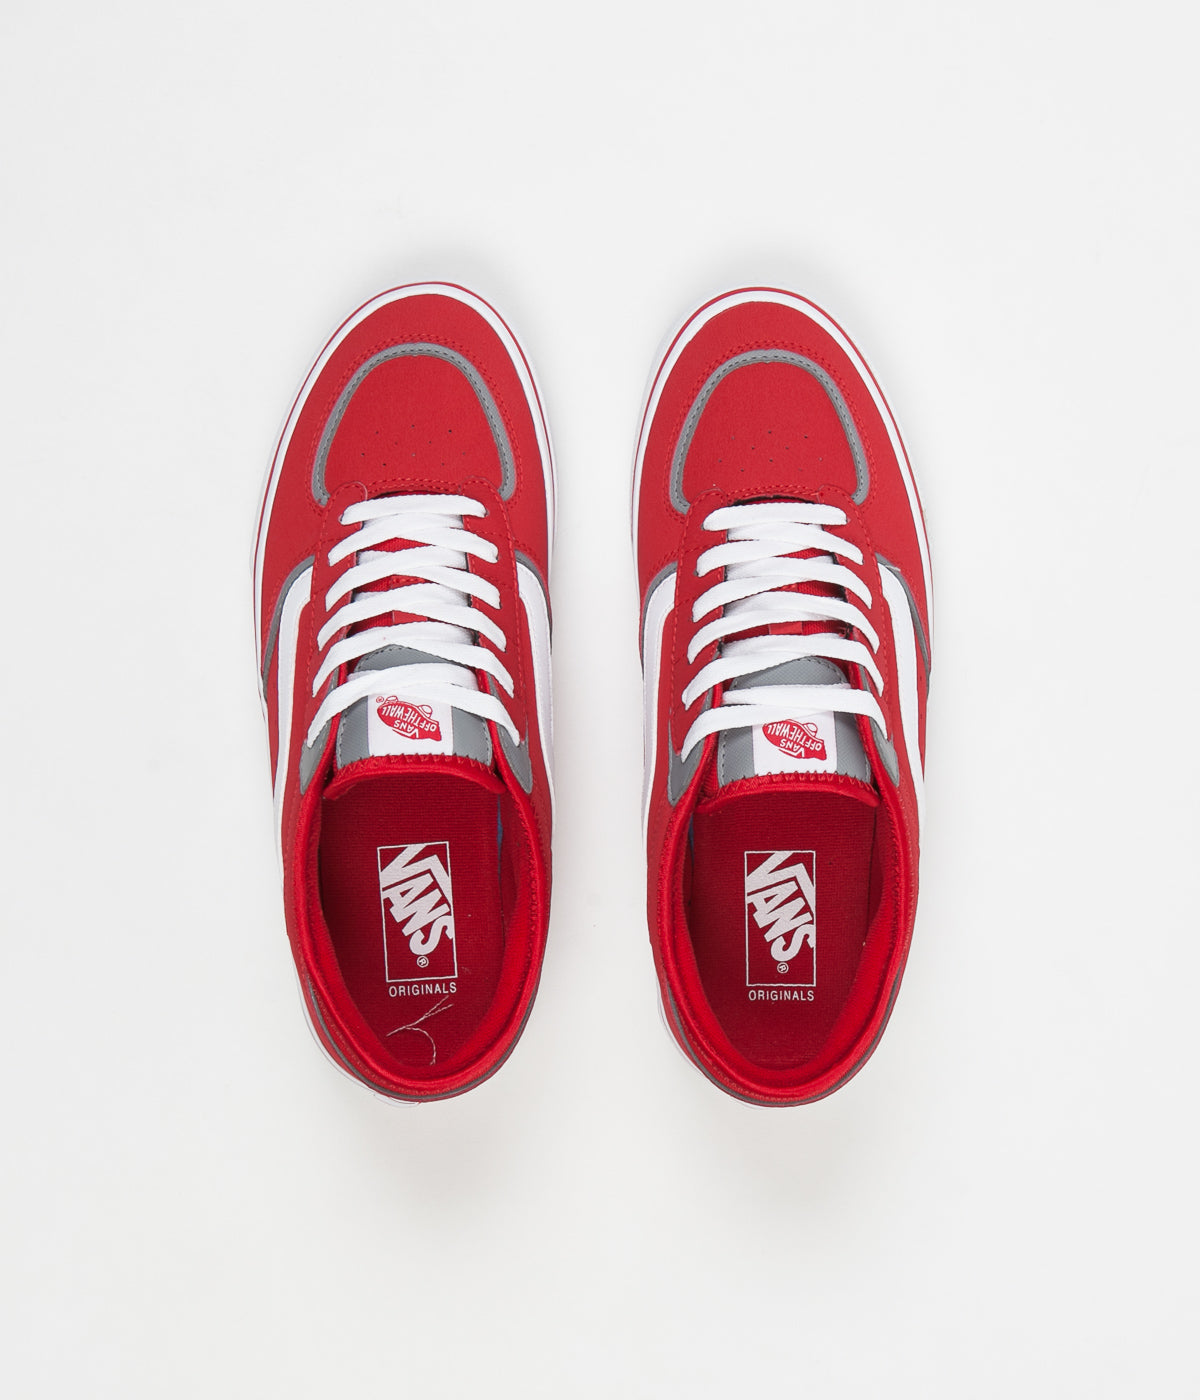 e23a0a24a8e Vans Rowley Classic LX Shoes - Racing Red   White ...